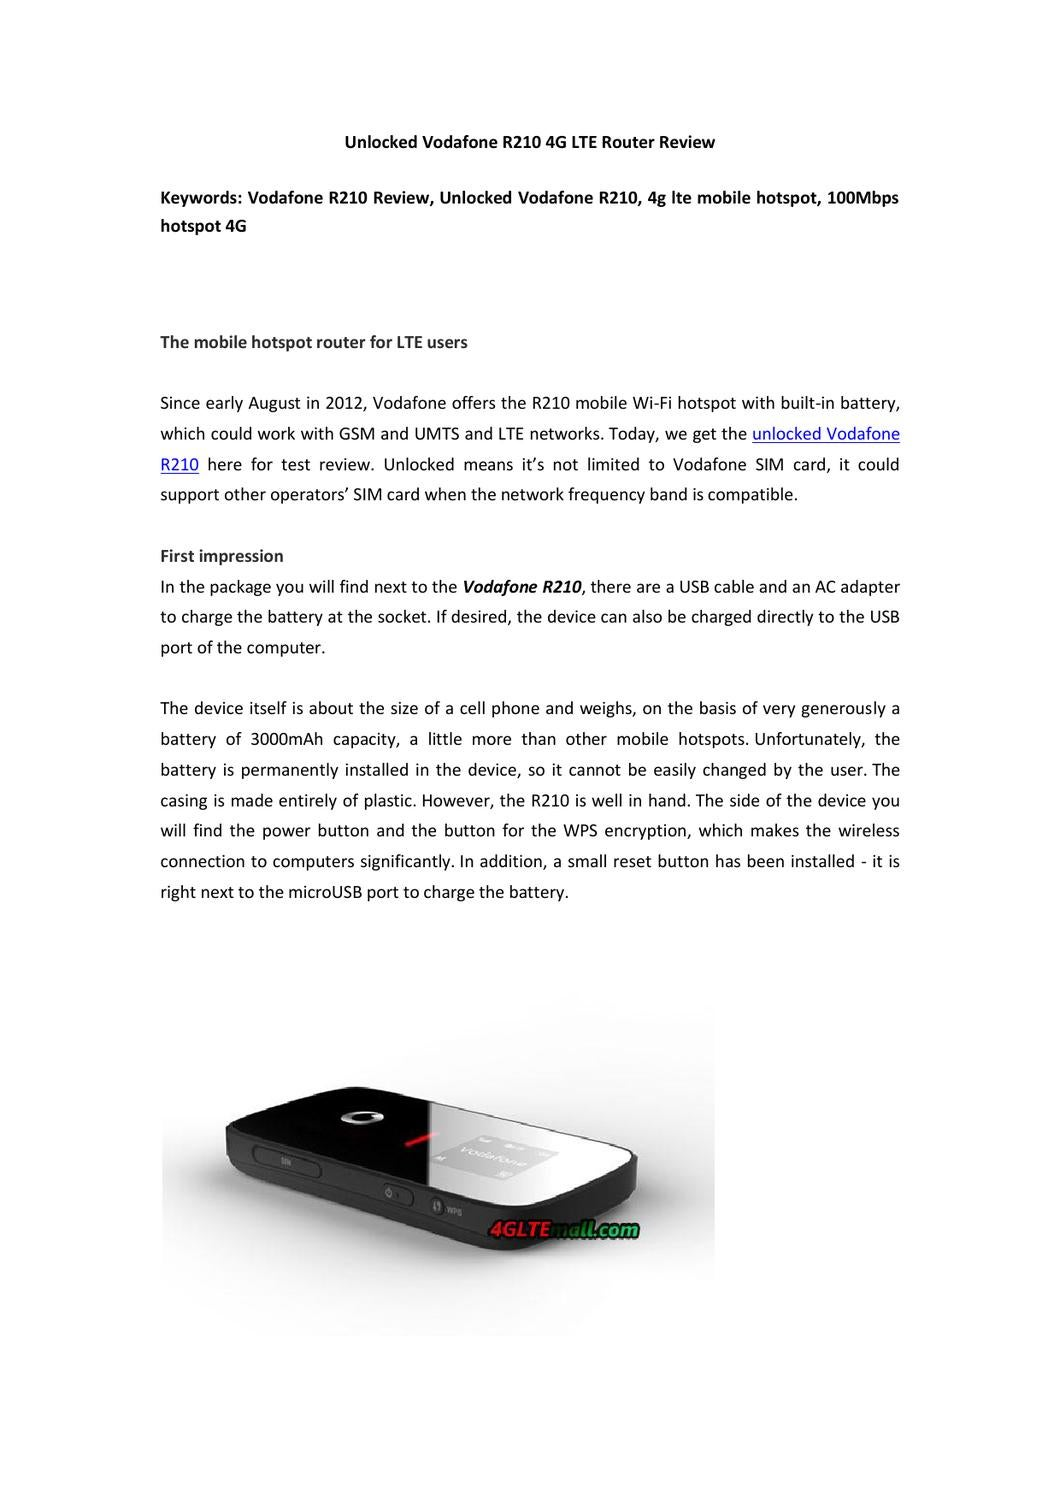 Unlocked Vodafone R210 4G LTE Router Review by Lte Mall - issuu